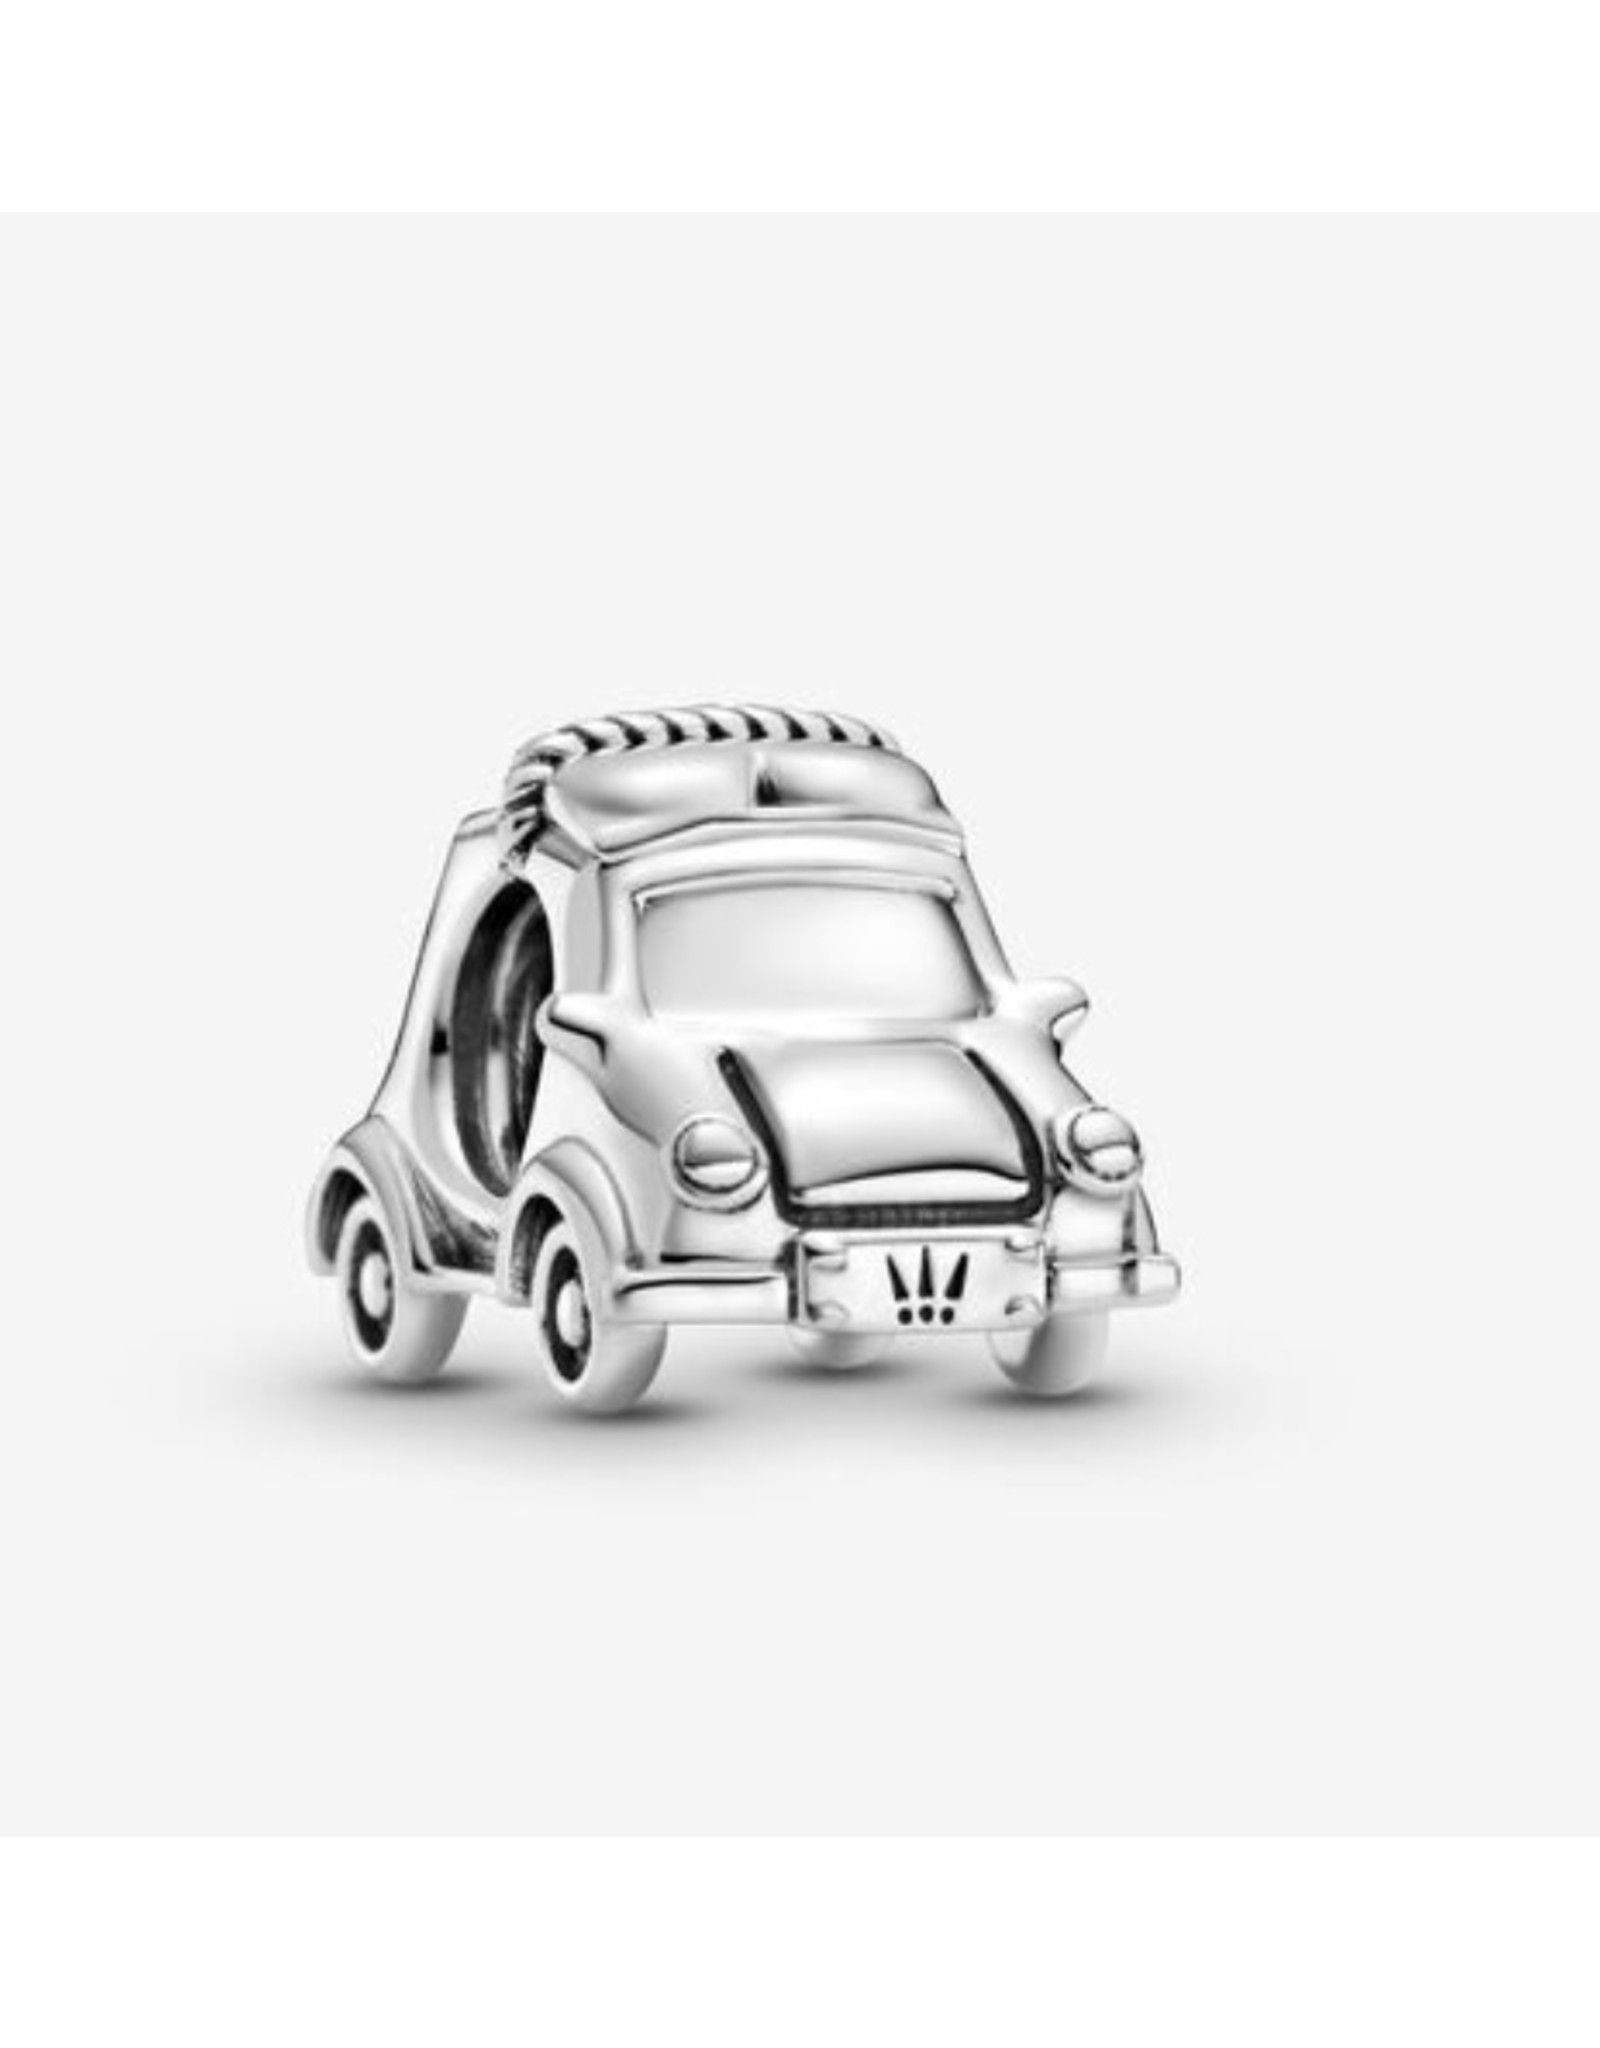 Pandora Pandora Charm,799330C01, Electric Car, Red Emnamel